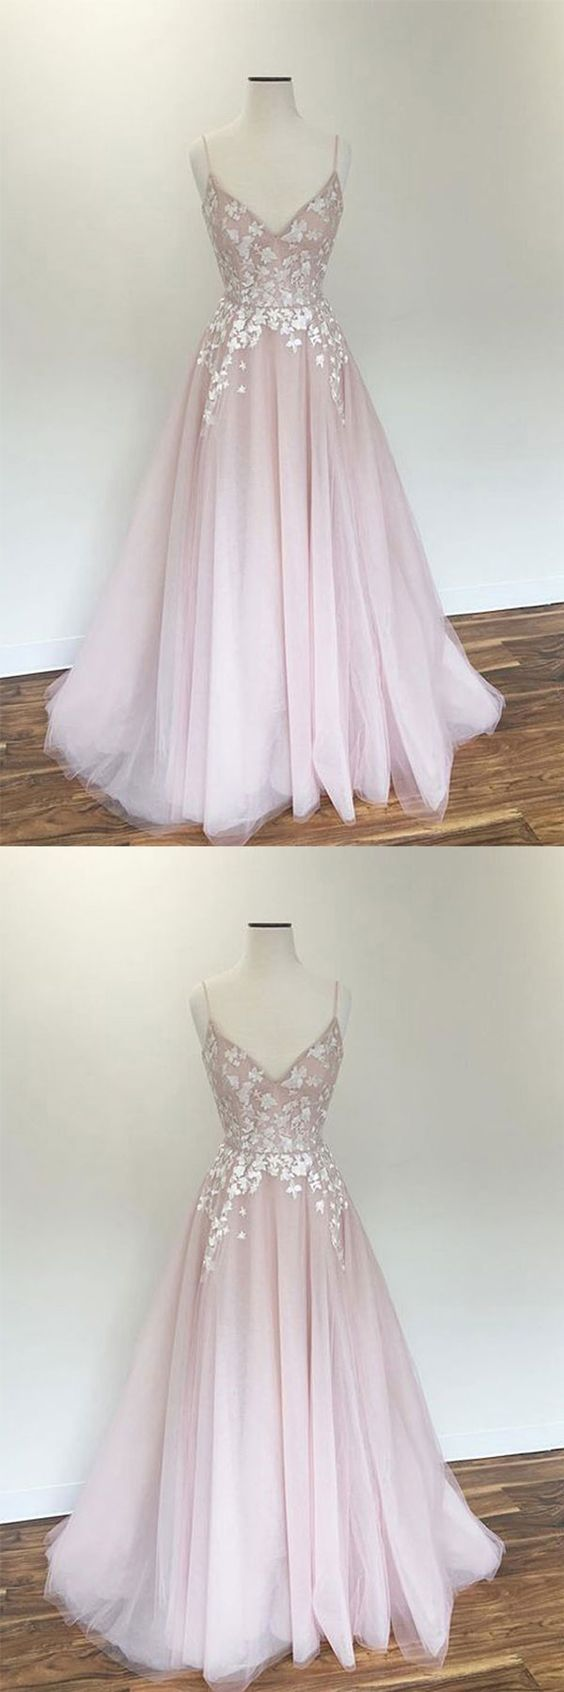 F0180 Light pink v neck tulle applique long prom dress, pink evening dress